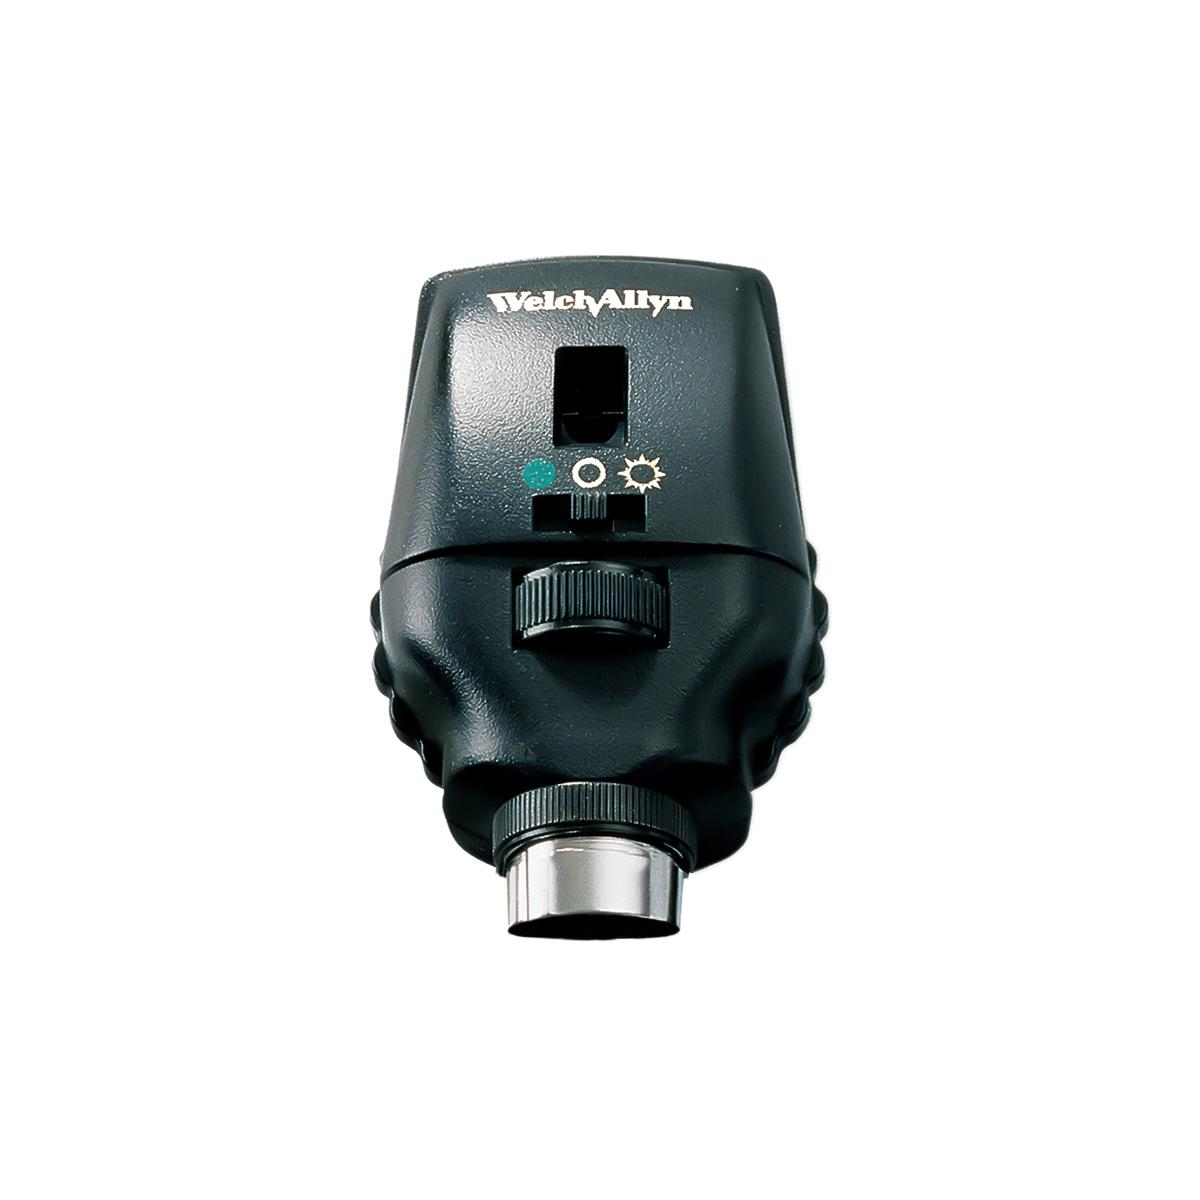 Prestige Coaxial-Plus Ophthalmoscope top view